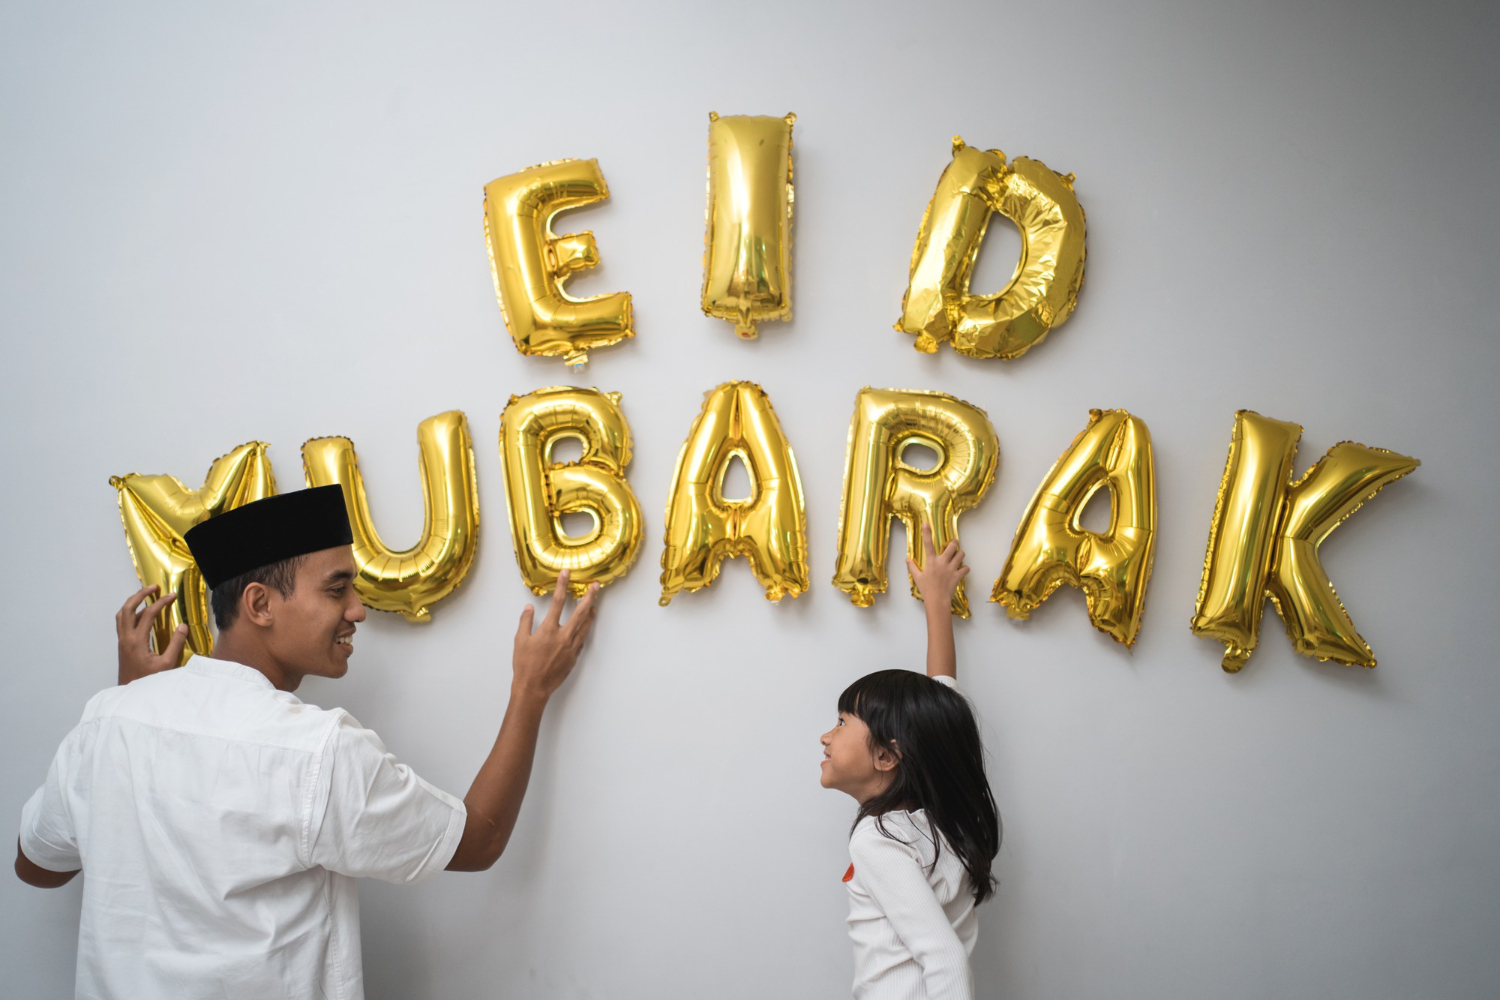 5 ways to decorate your home for Ramadan and Eid